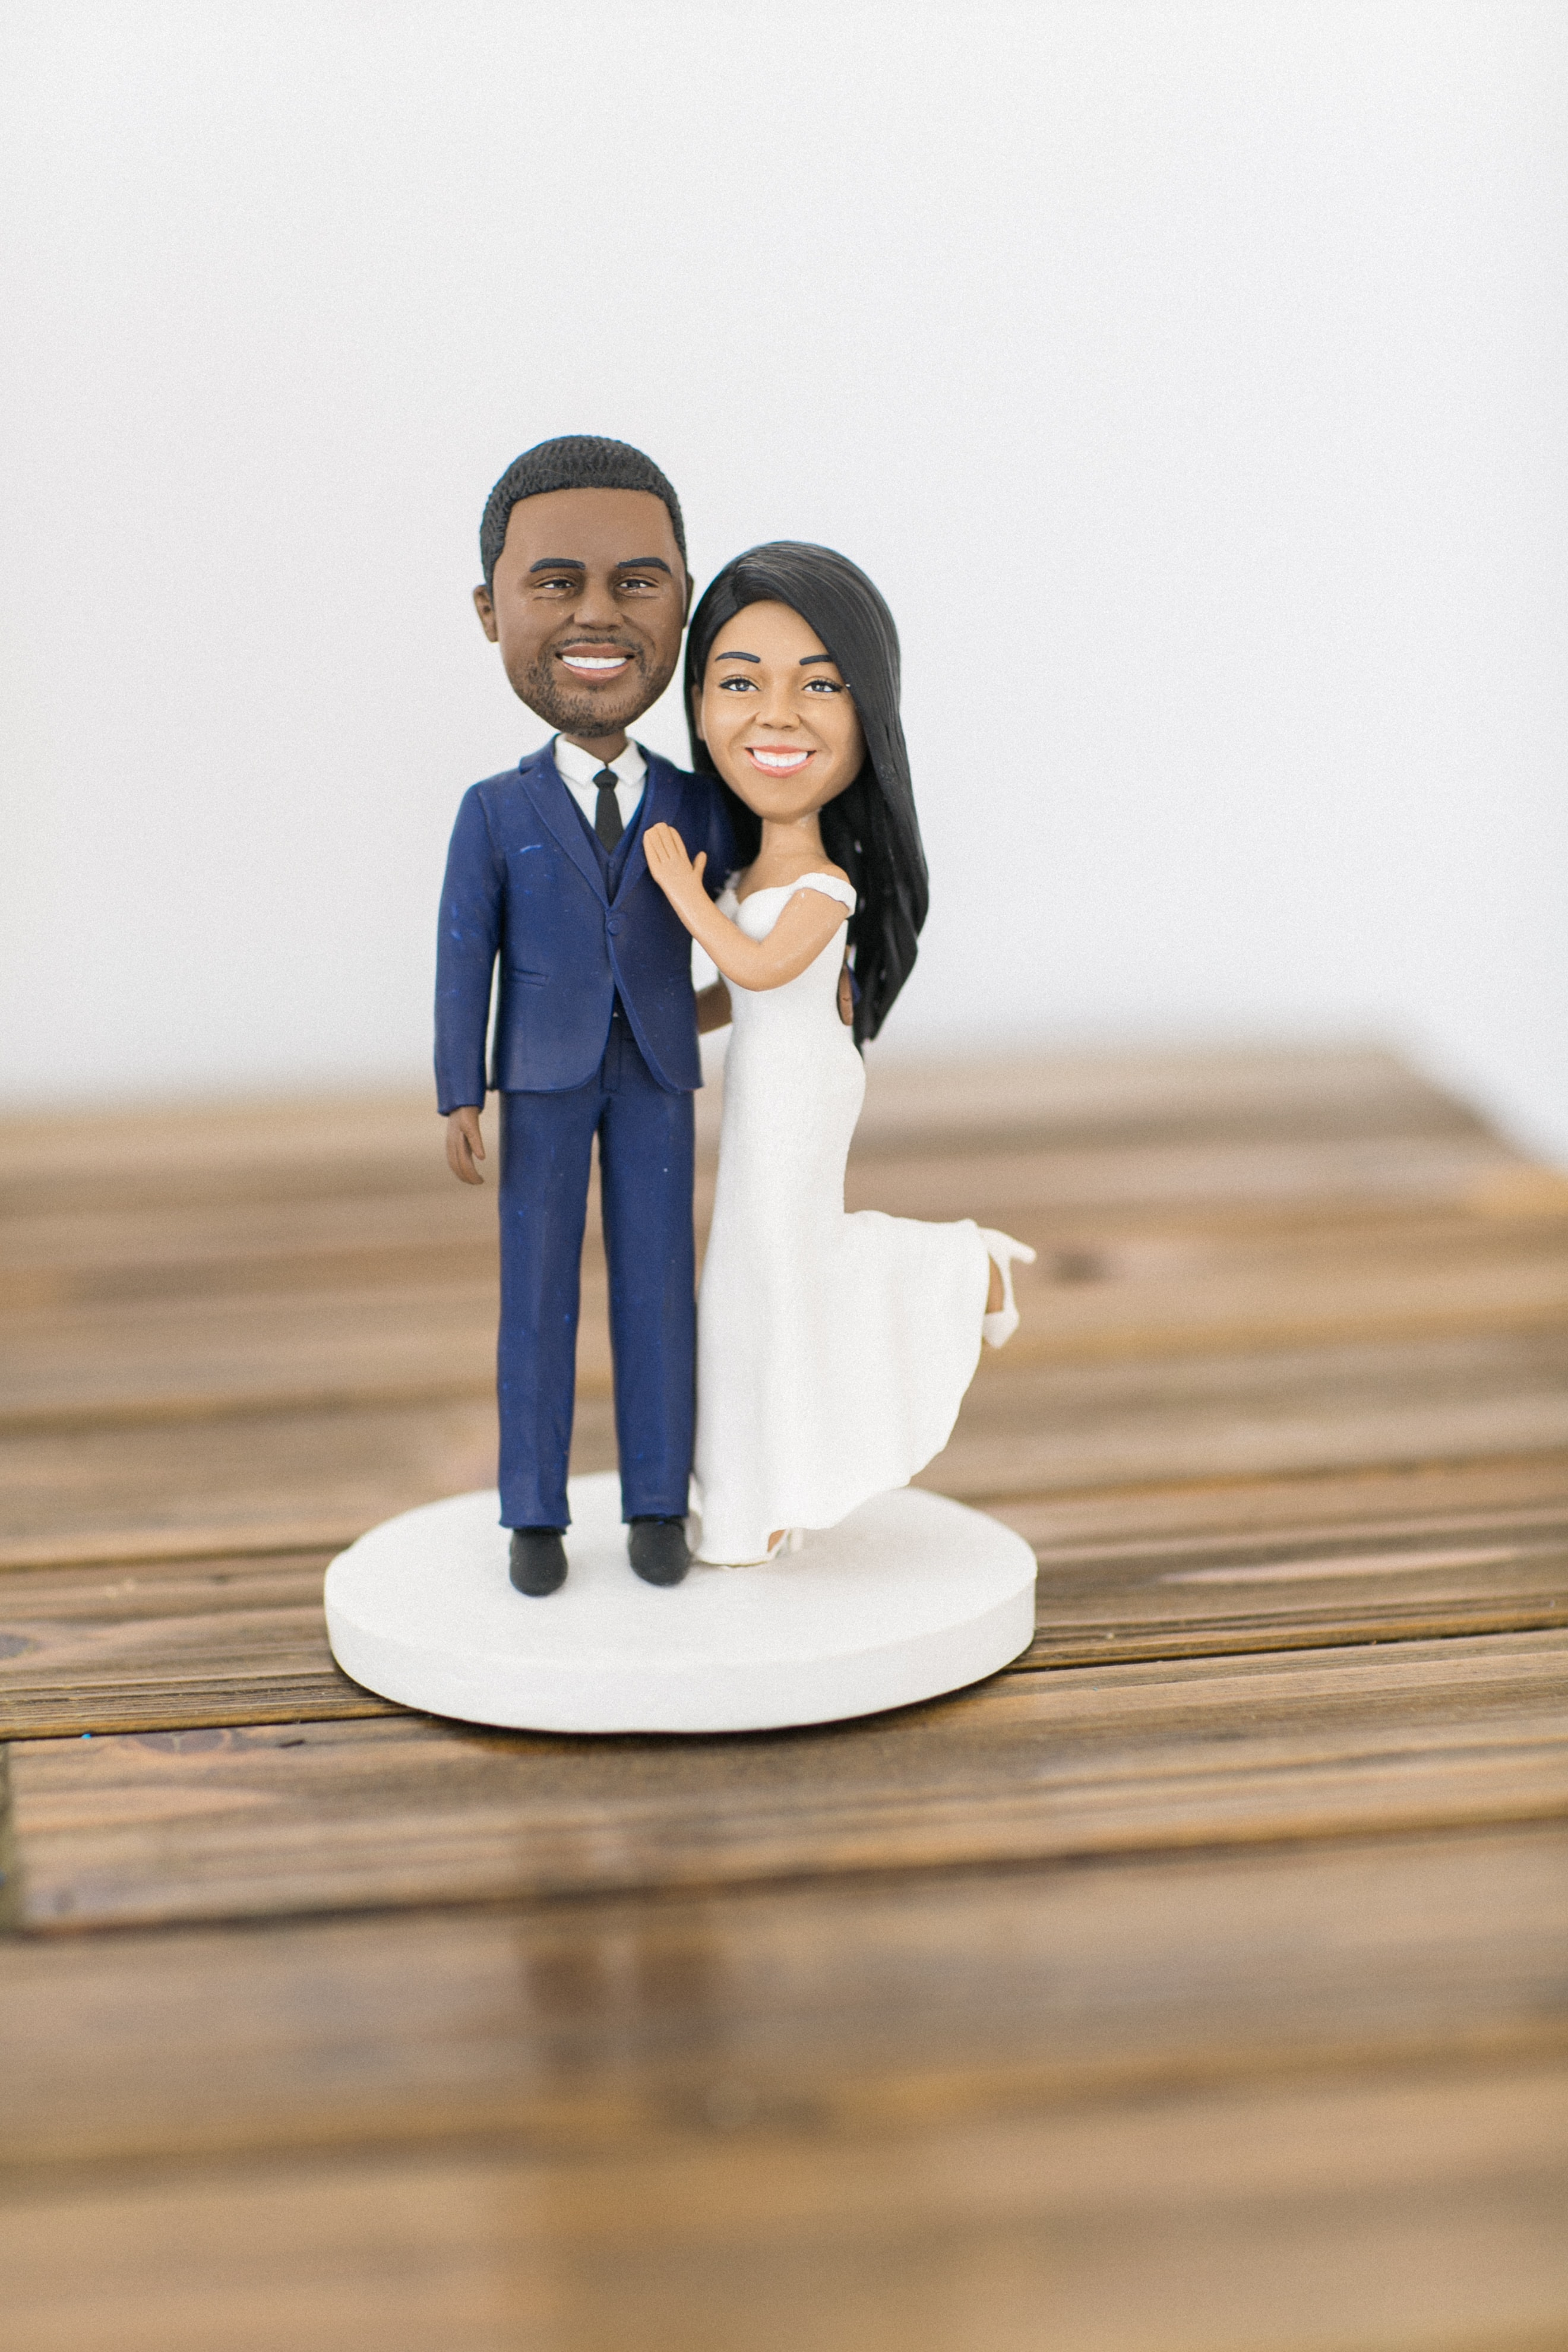 Amazing custom cake topper that resembles the bride and groom captured by Almond Leaf Studios